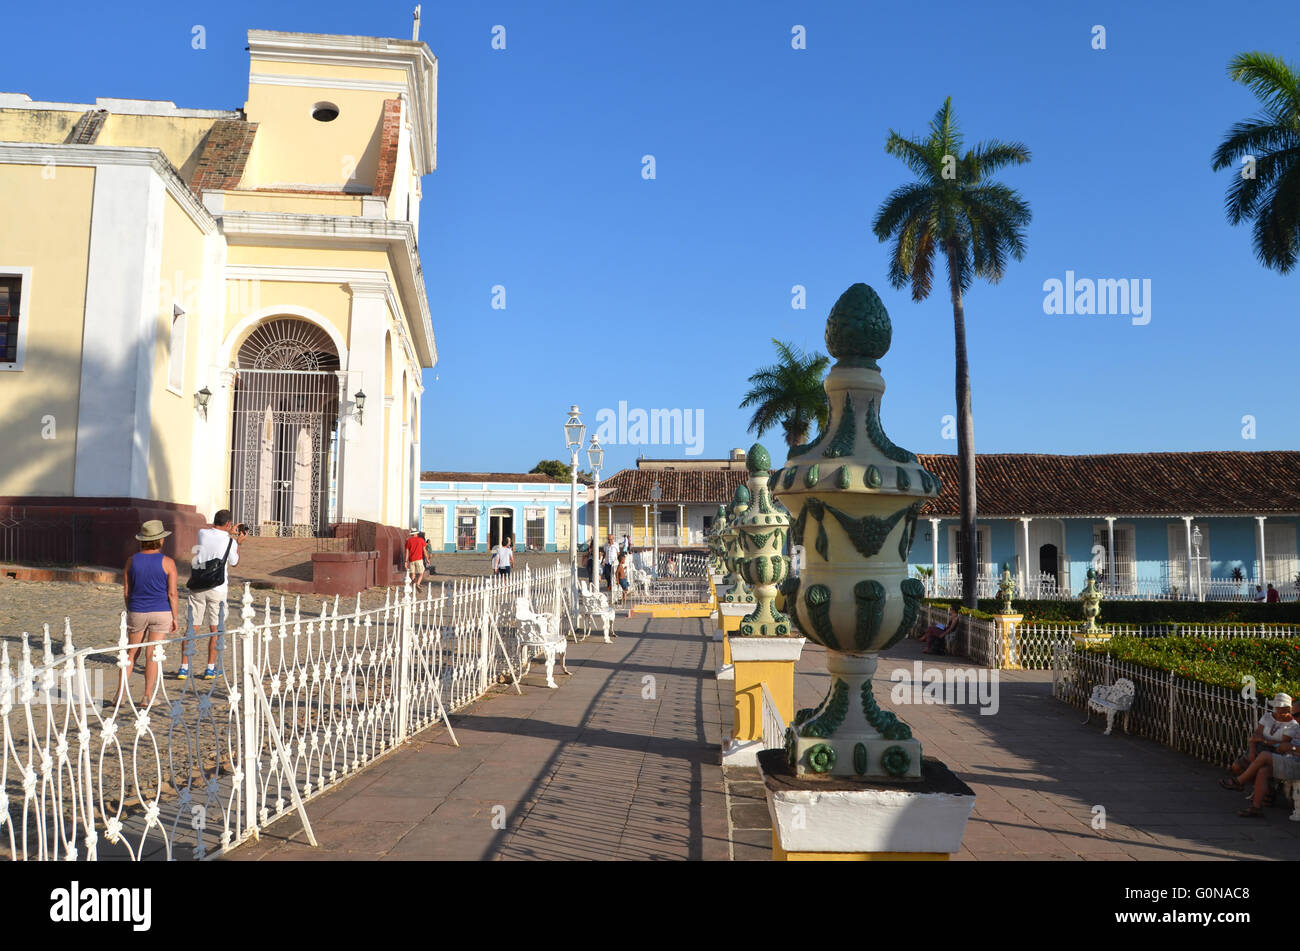 Holy Trinity church, Trinidad, Cuba 2016 - Stock Image